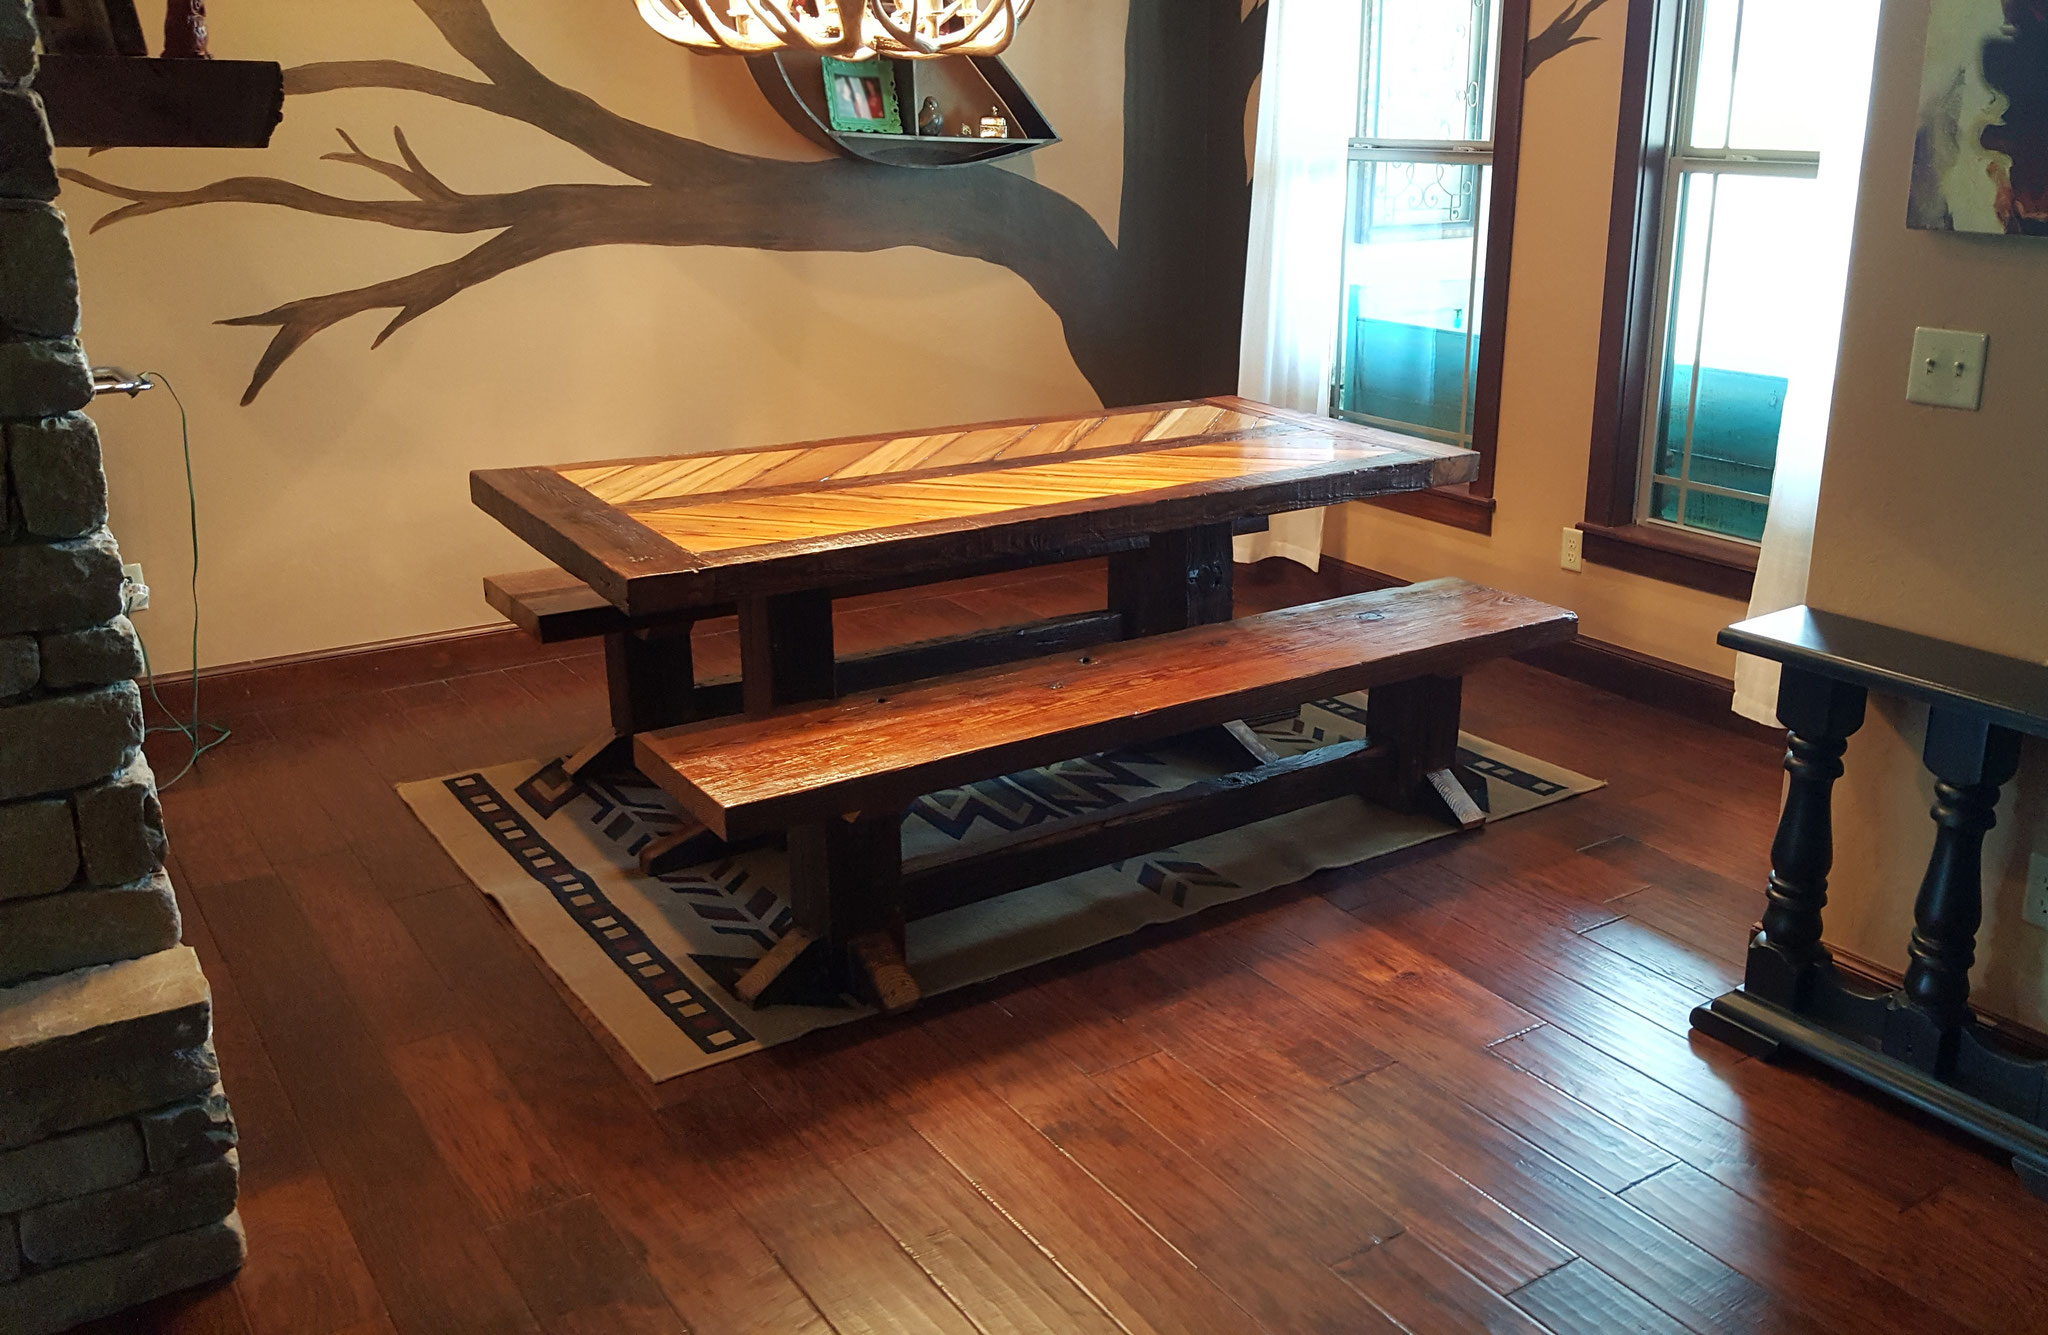 "Dining room table and benches made using reclaimed wood taken from a 100+ year old factory in southwest Oklahoma. The table measures 80""x38""x30"" (LxWxH) and the benches measure 80""x16""x18""."